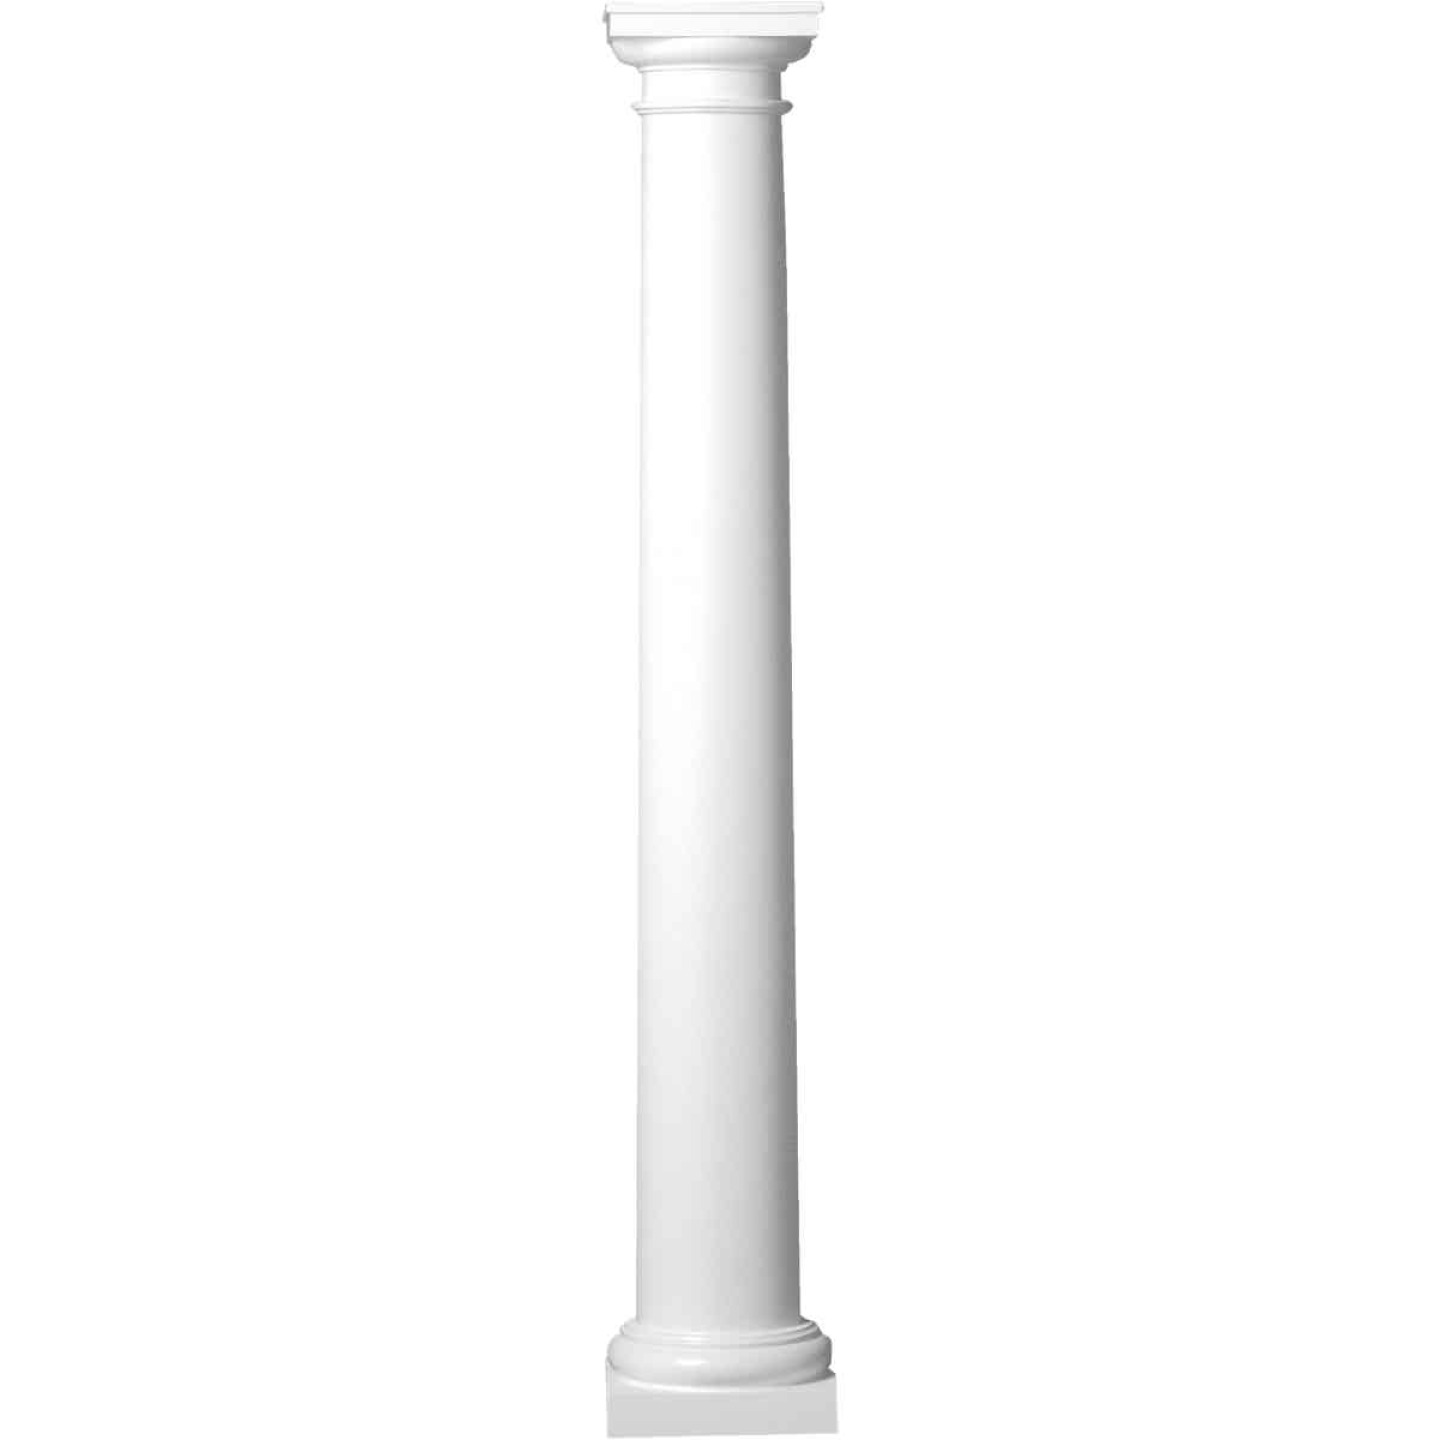 Crown Column 8 In. x 8 Ft. Unfinished Round Fiberglass Column Image 1